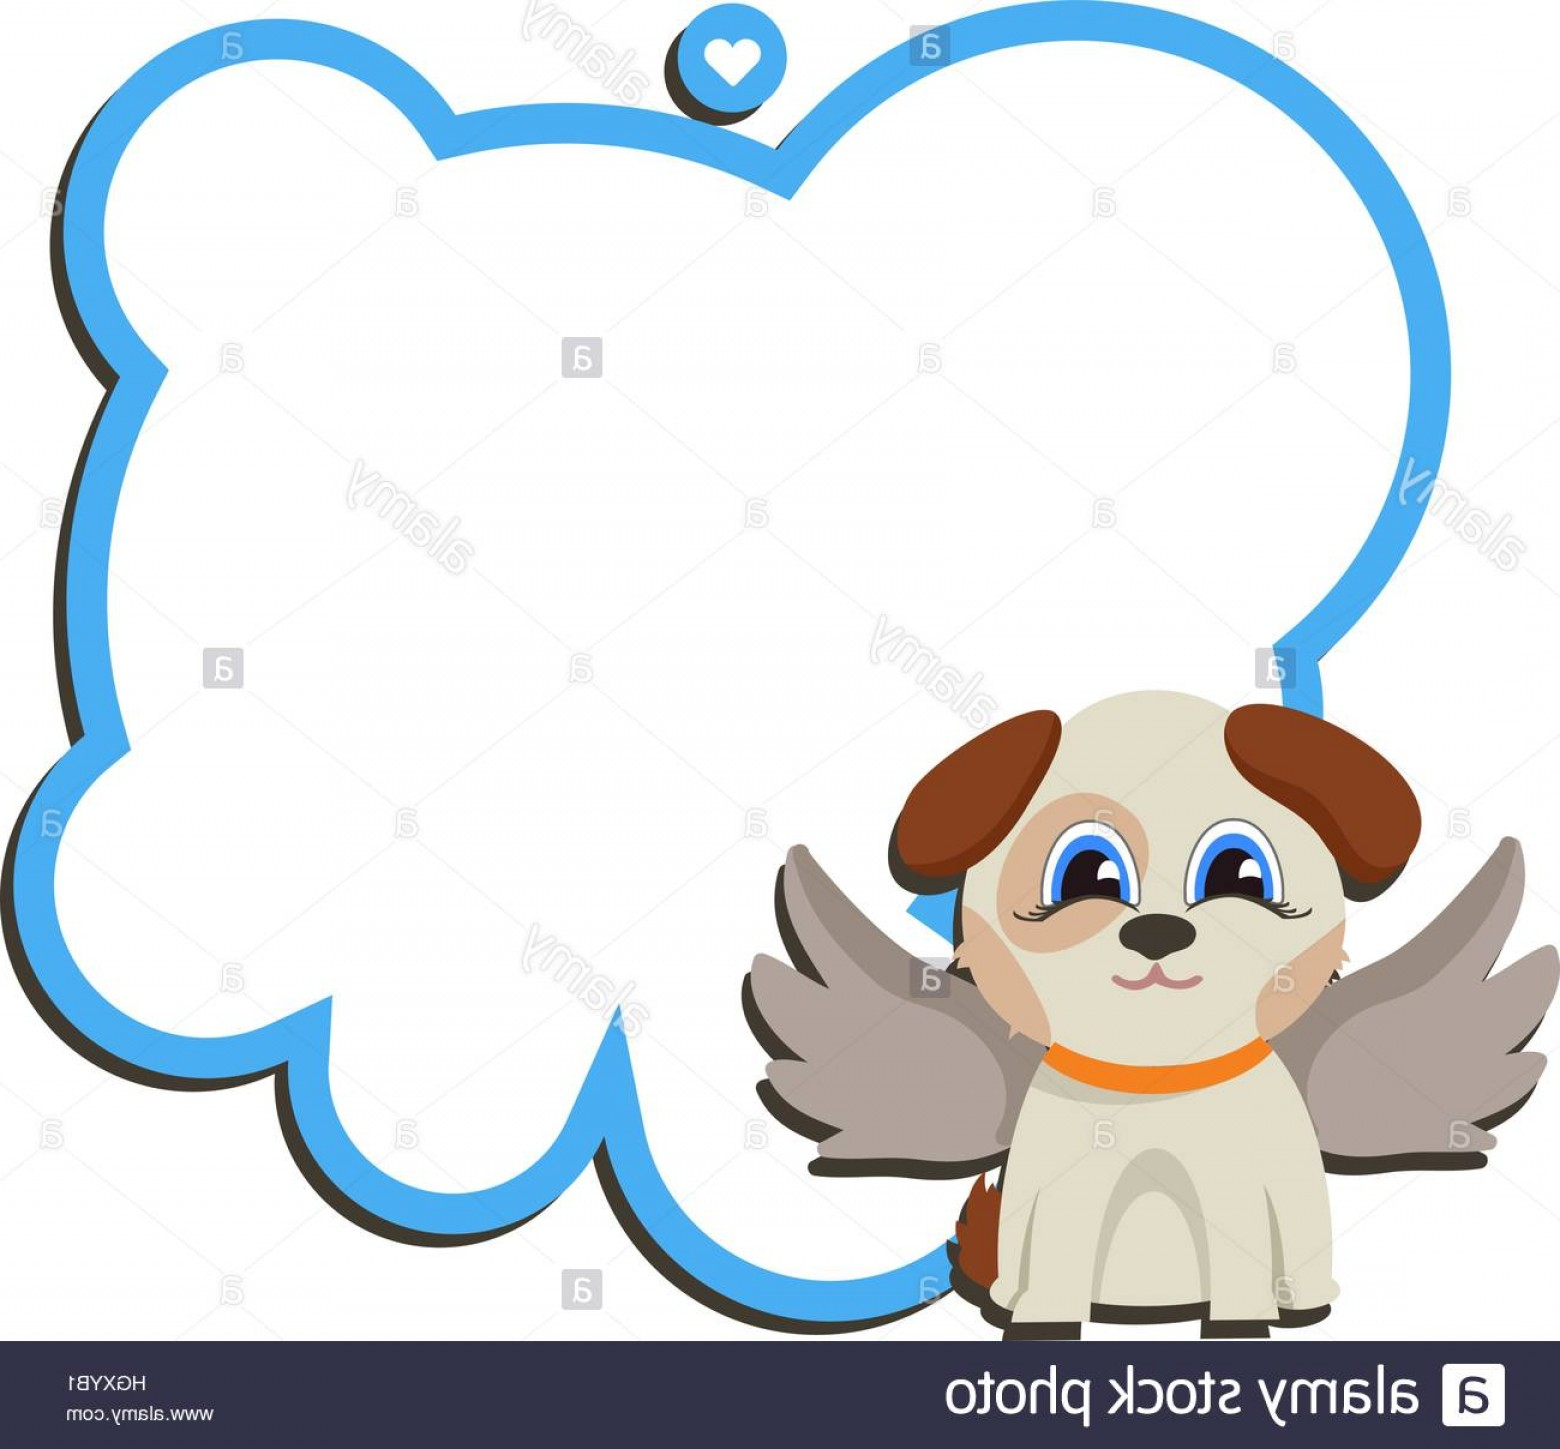 Vector Of Angel Art Dog: Stock Photo Angel Dog With Board And A Wish Valentine Message